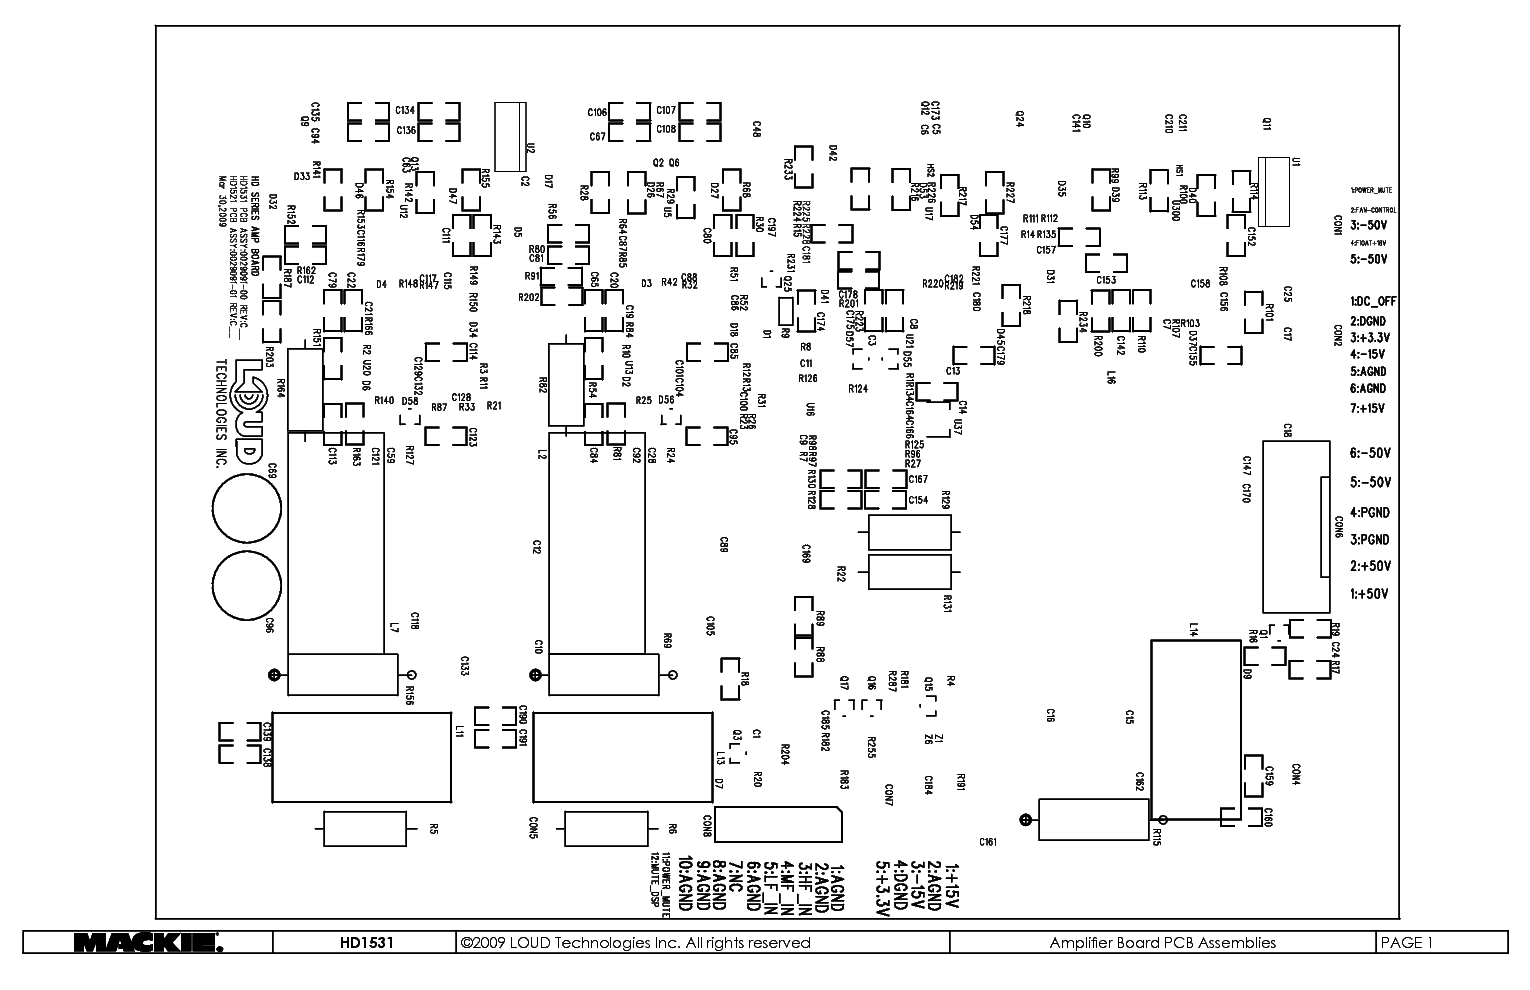 MACKIE AMPLIFIER BOARD PCB ASSEMBLY TOP AND SCHEMATICS